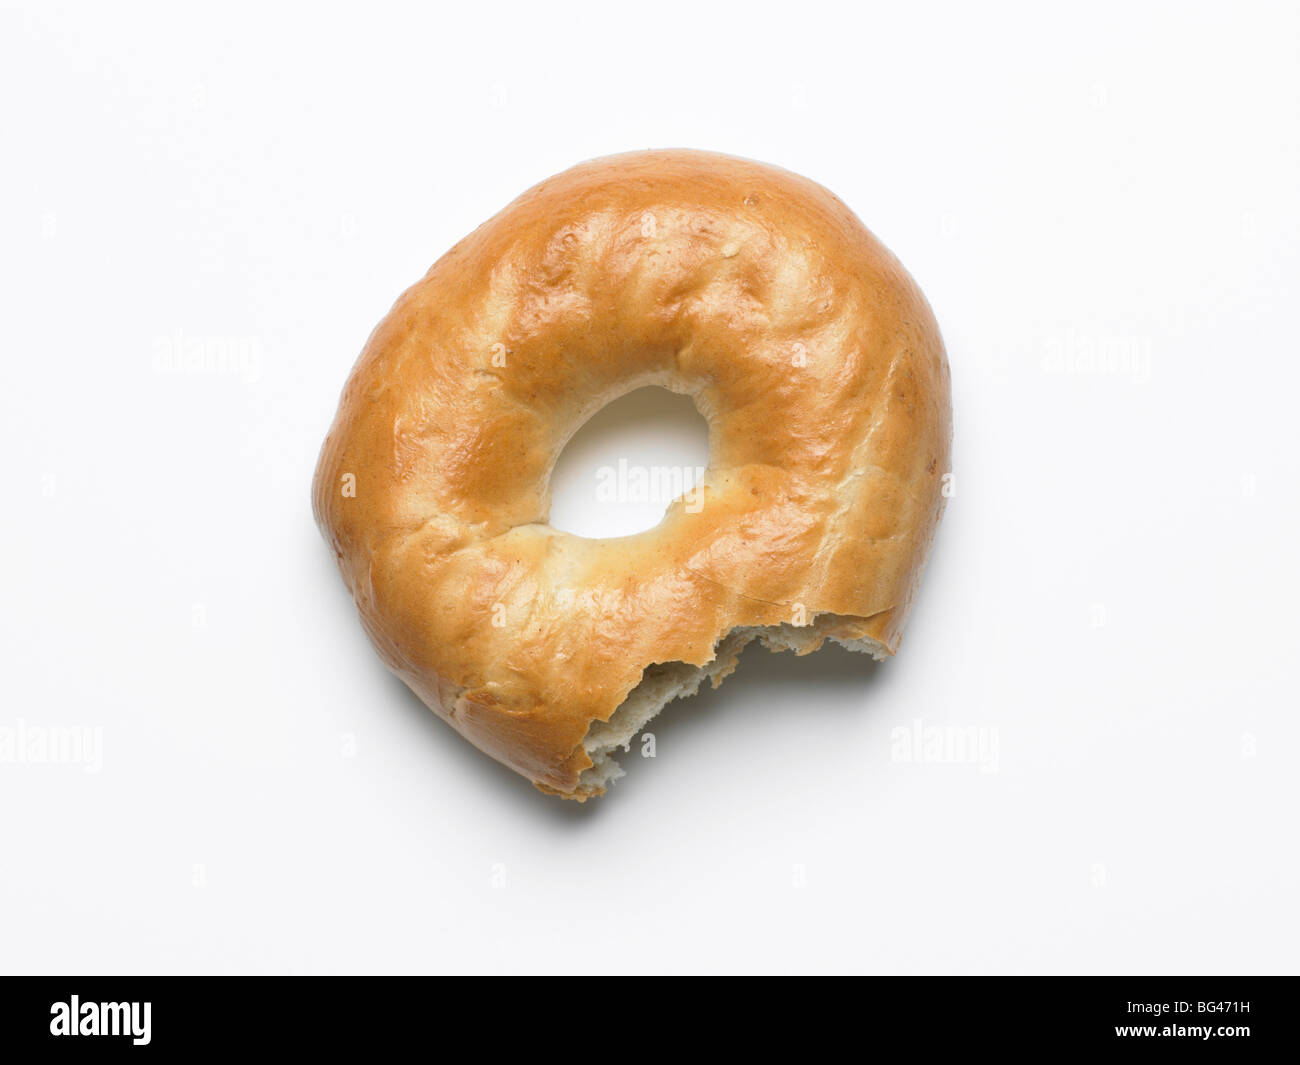 bagel with bite taken out - Stock Image